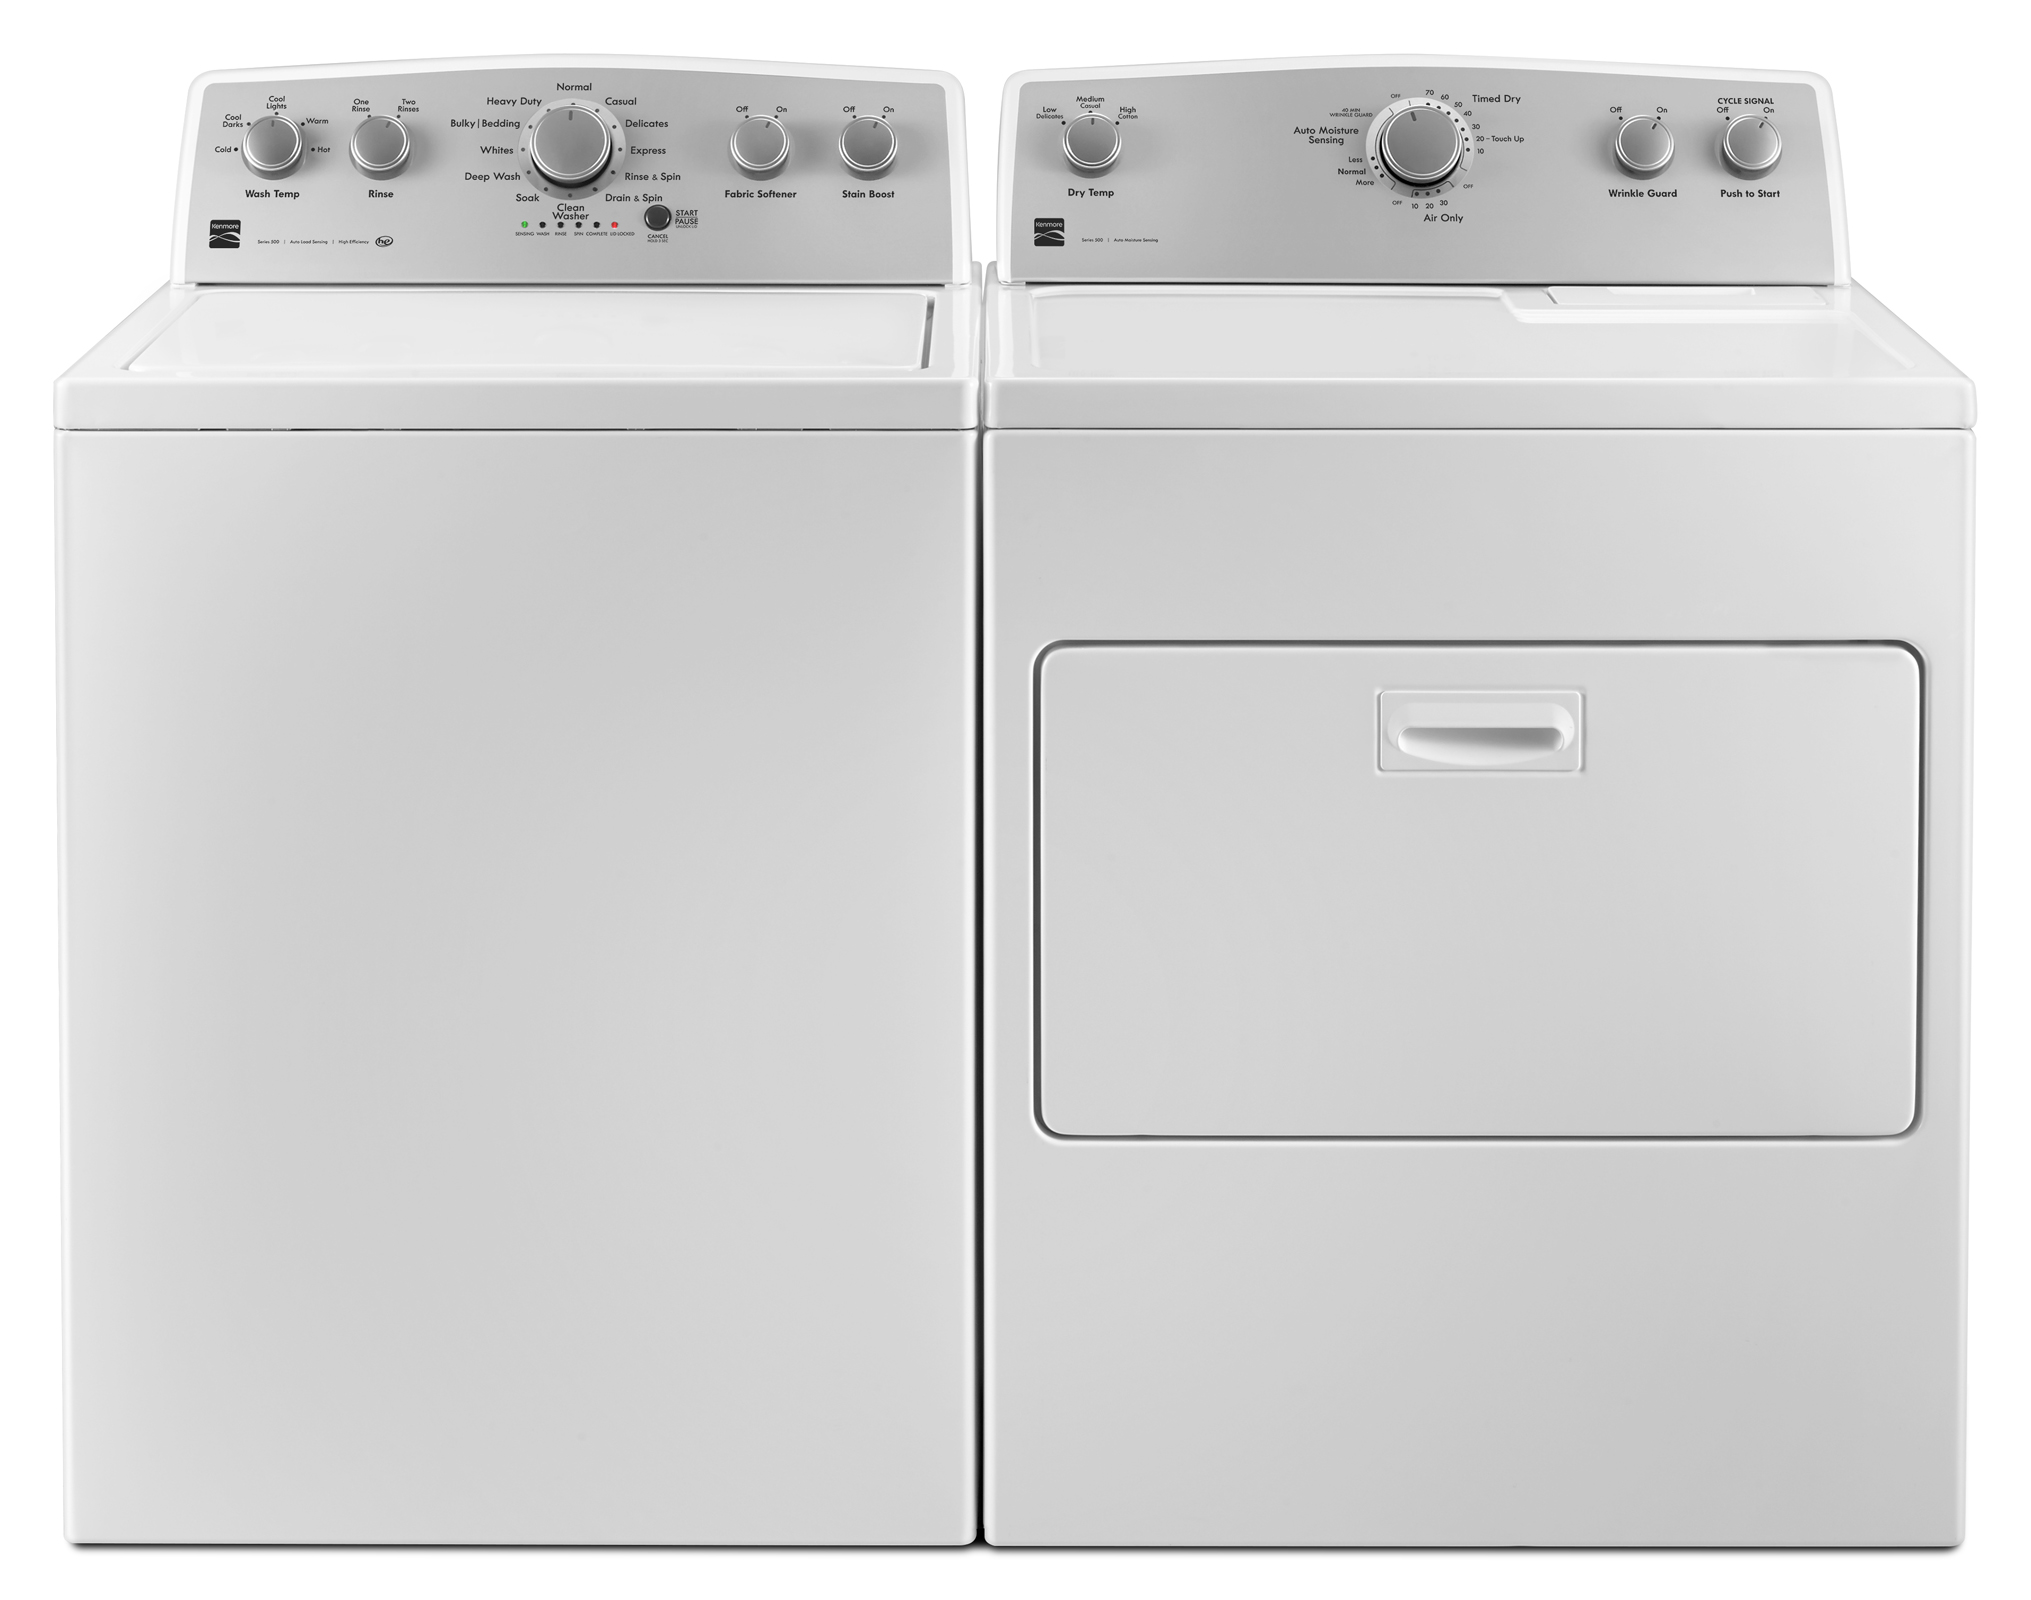 4.3 cu. ft. Top Load Washer & 7.0 cu. ft. Dryer Bundle - White